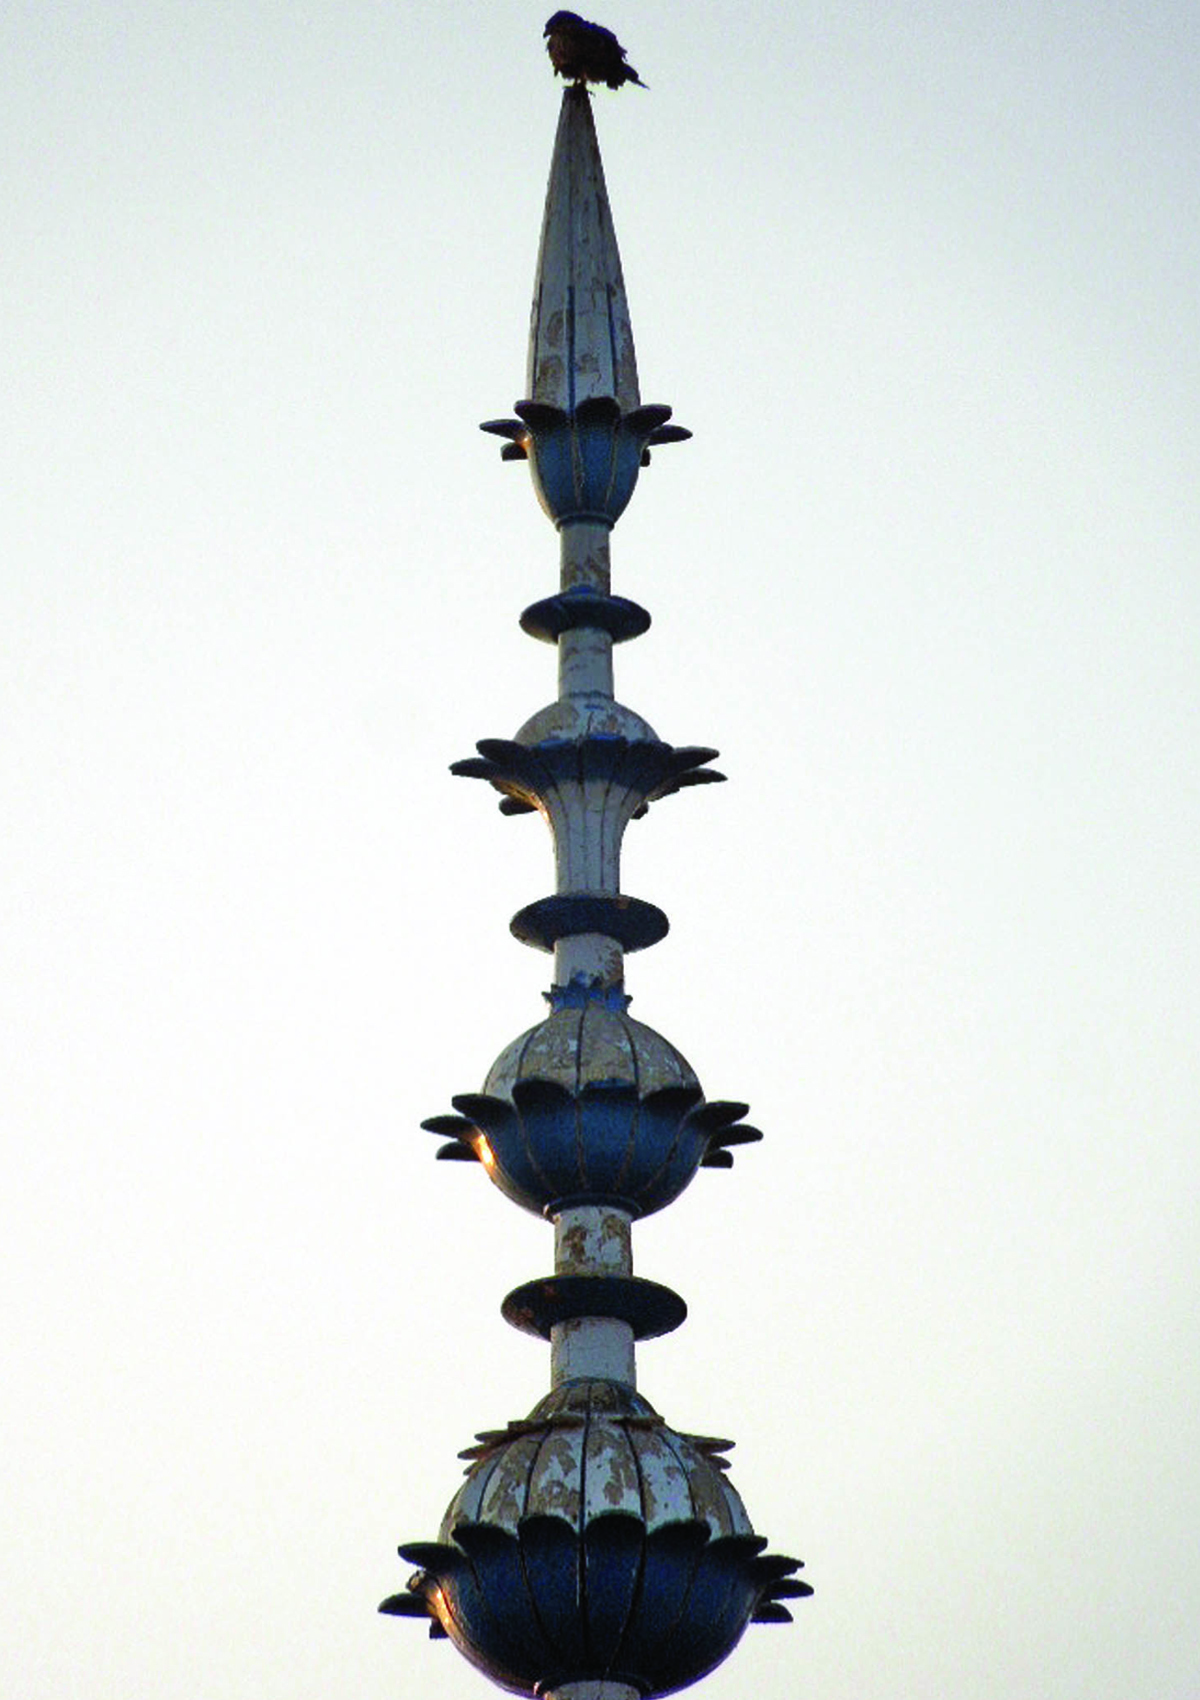 The spire at one of the domes of mosque